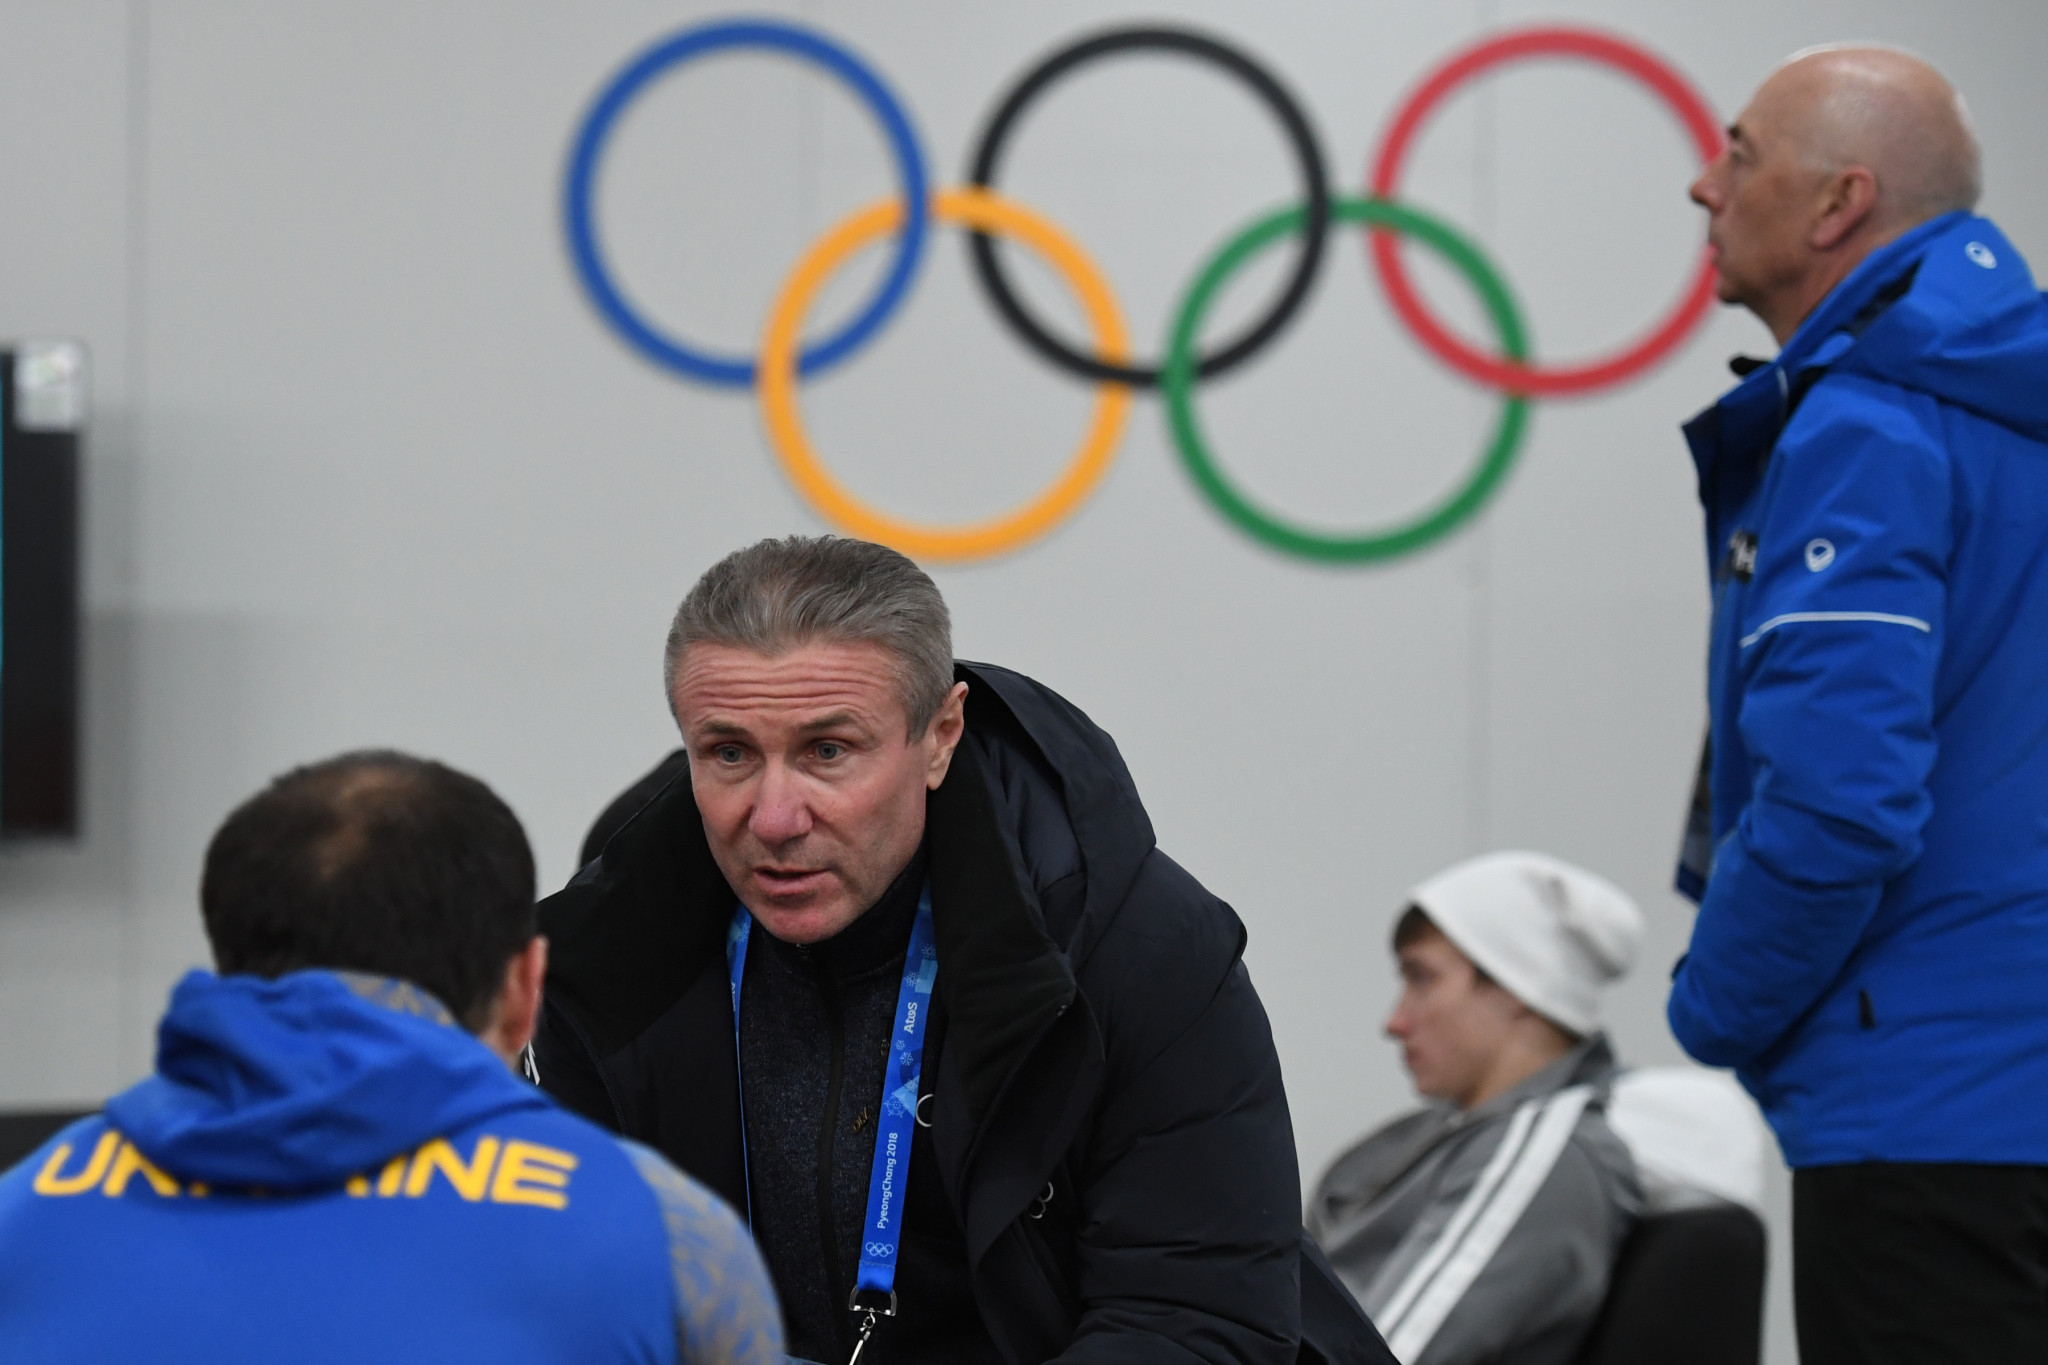 The AIU said they would not be taking any further action against Sergey Bubka ©Getty Images